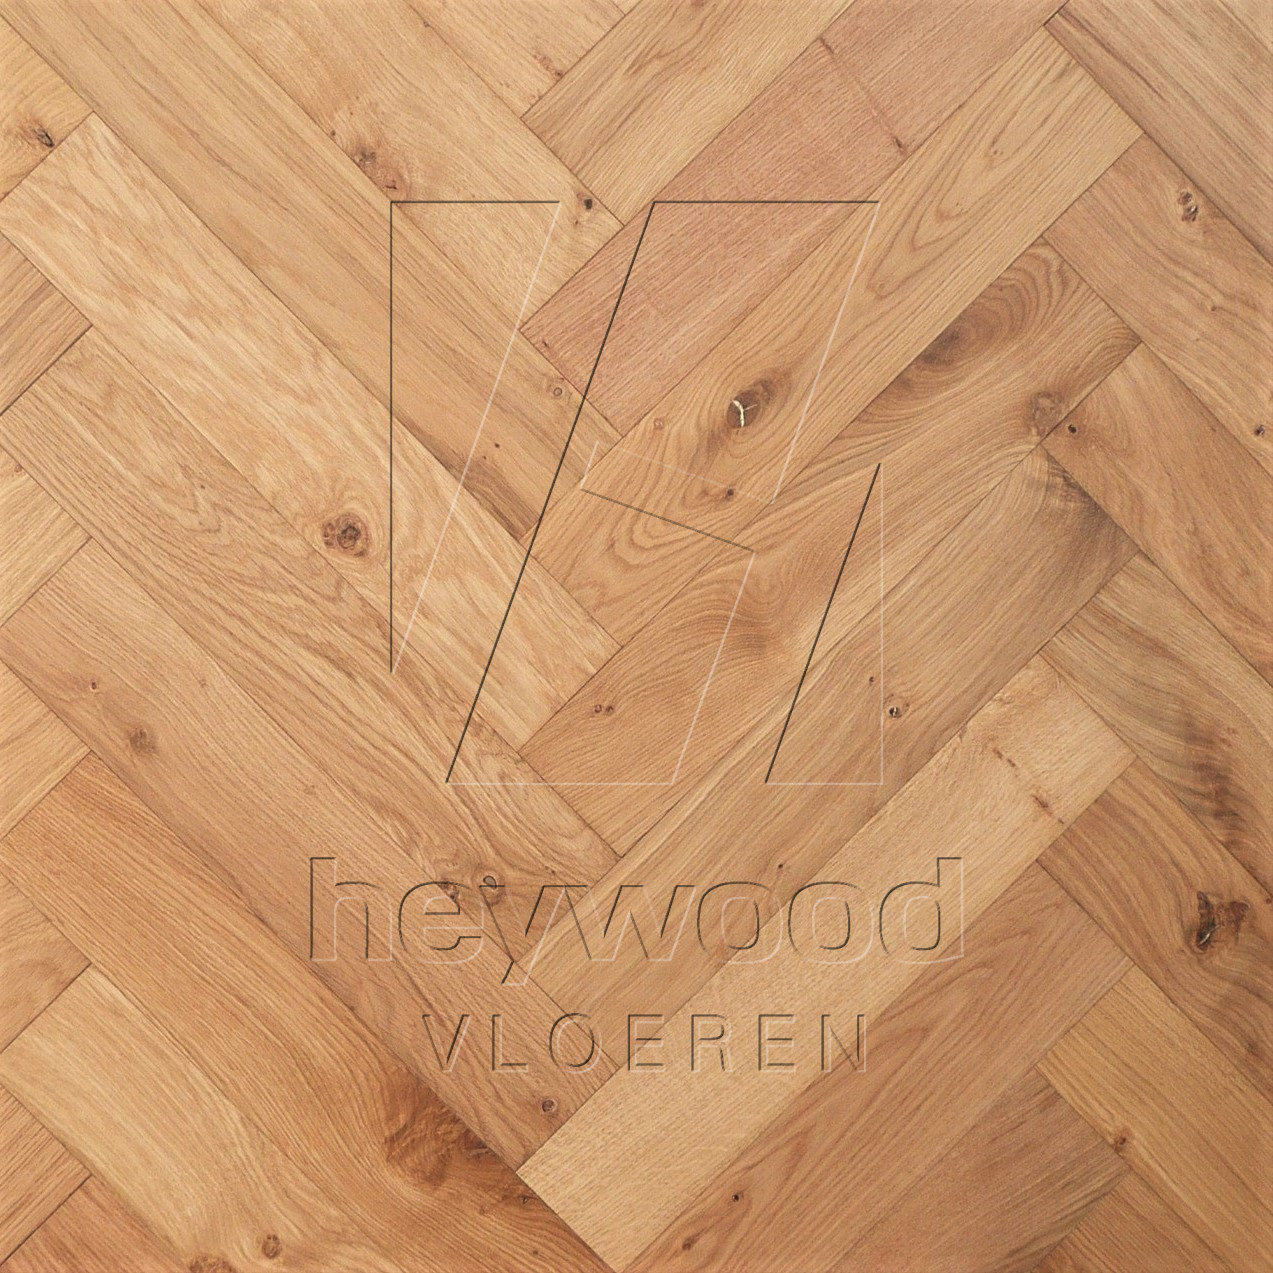 Herringbone Plymouth in Herringbone of Pattern & Panel Floors